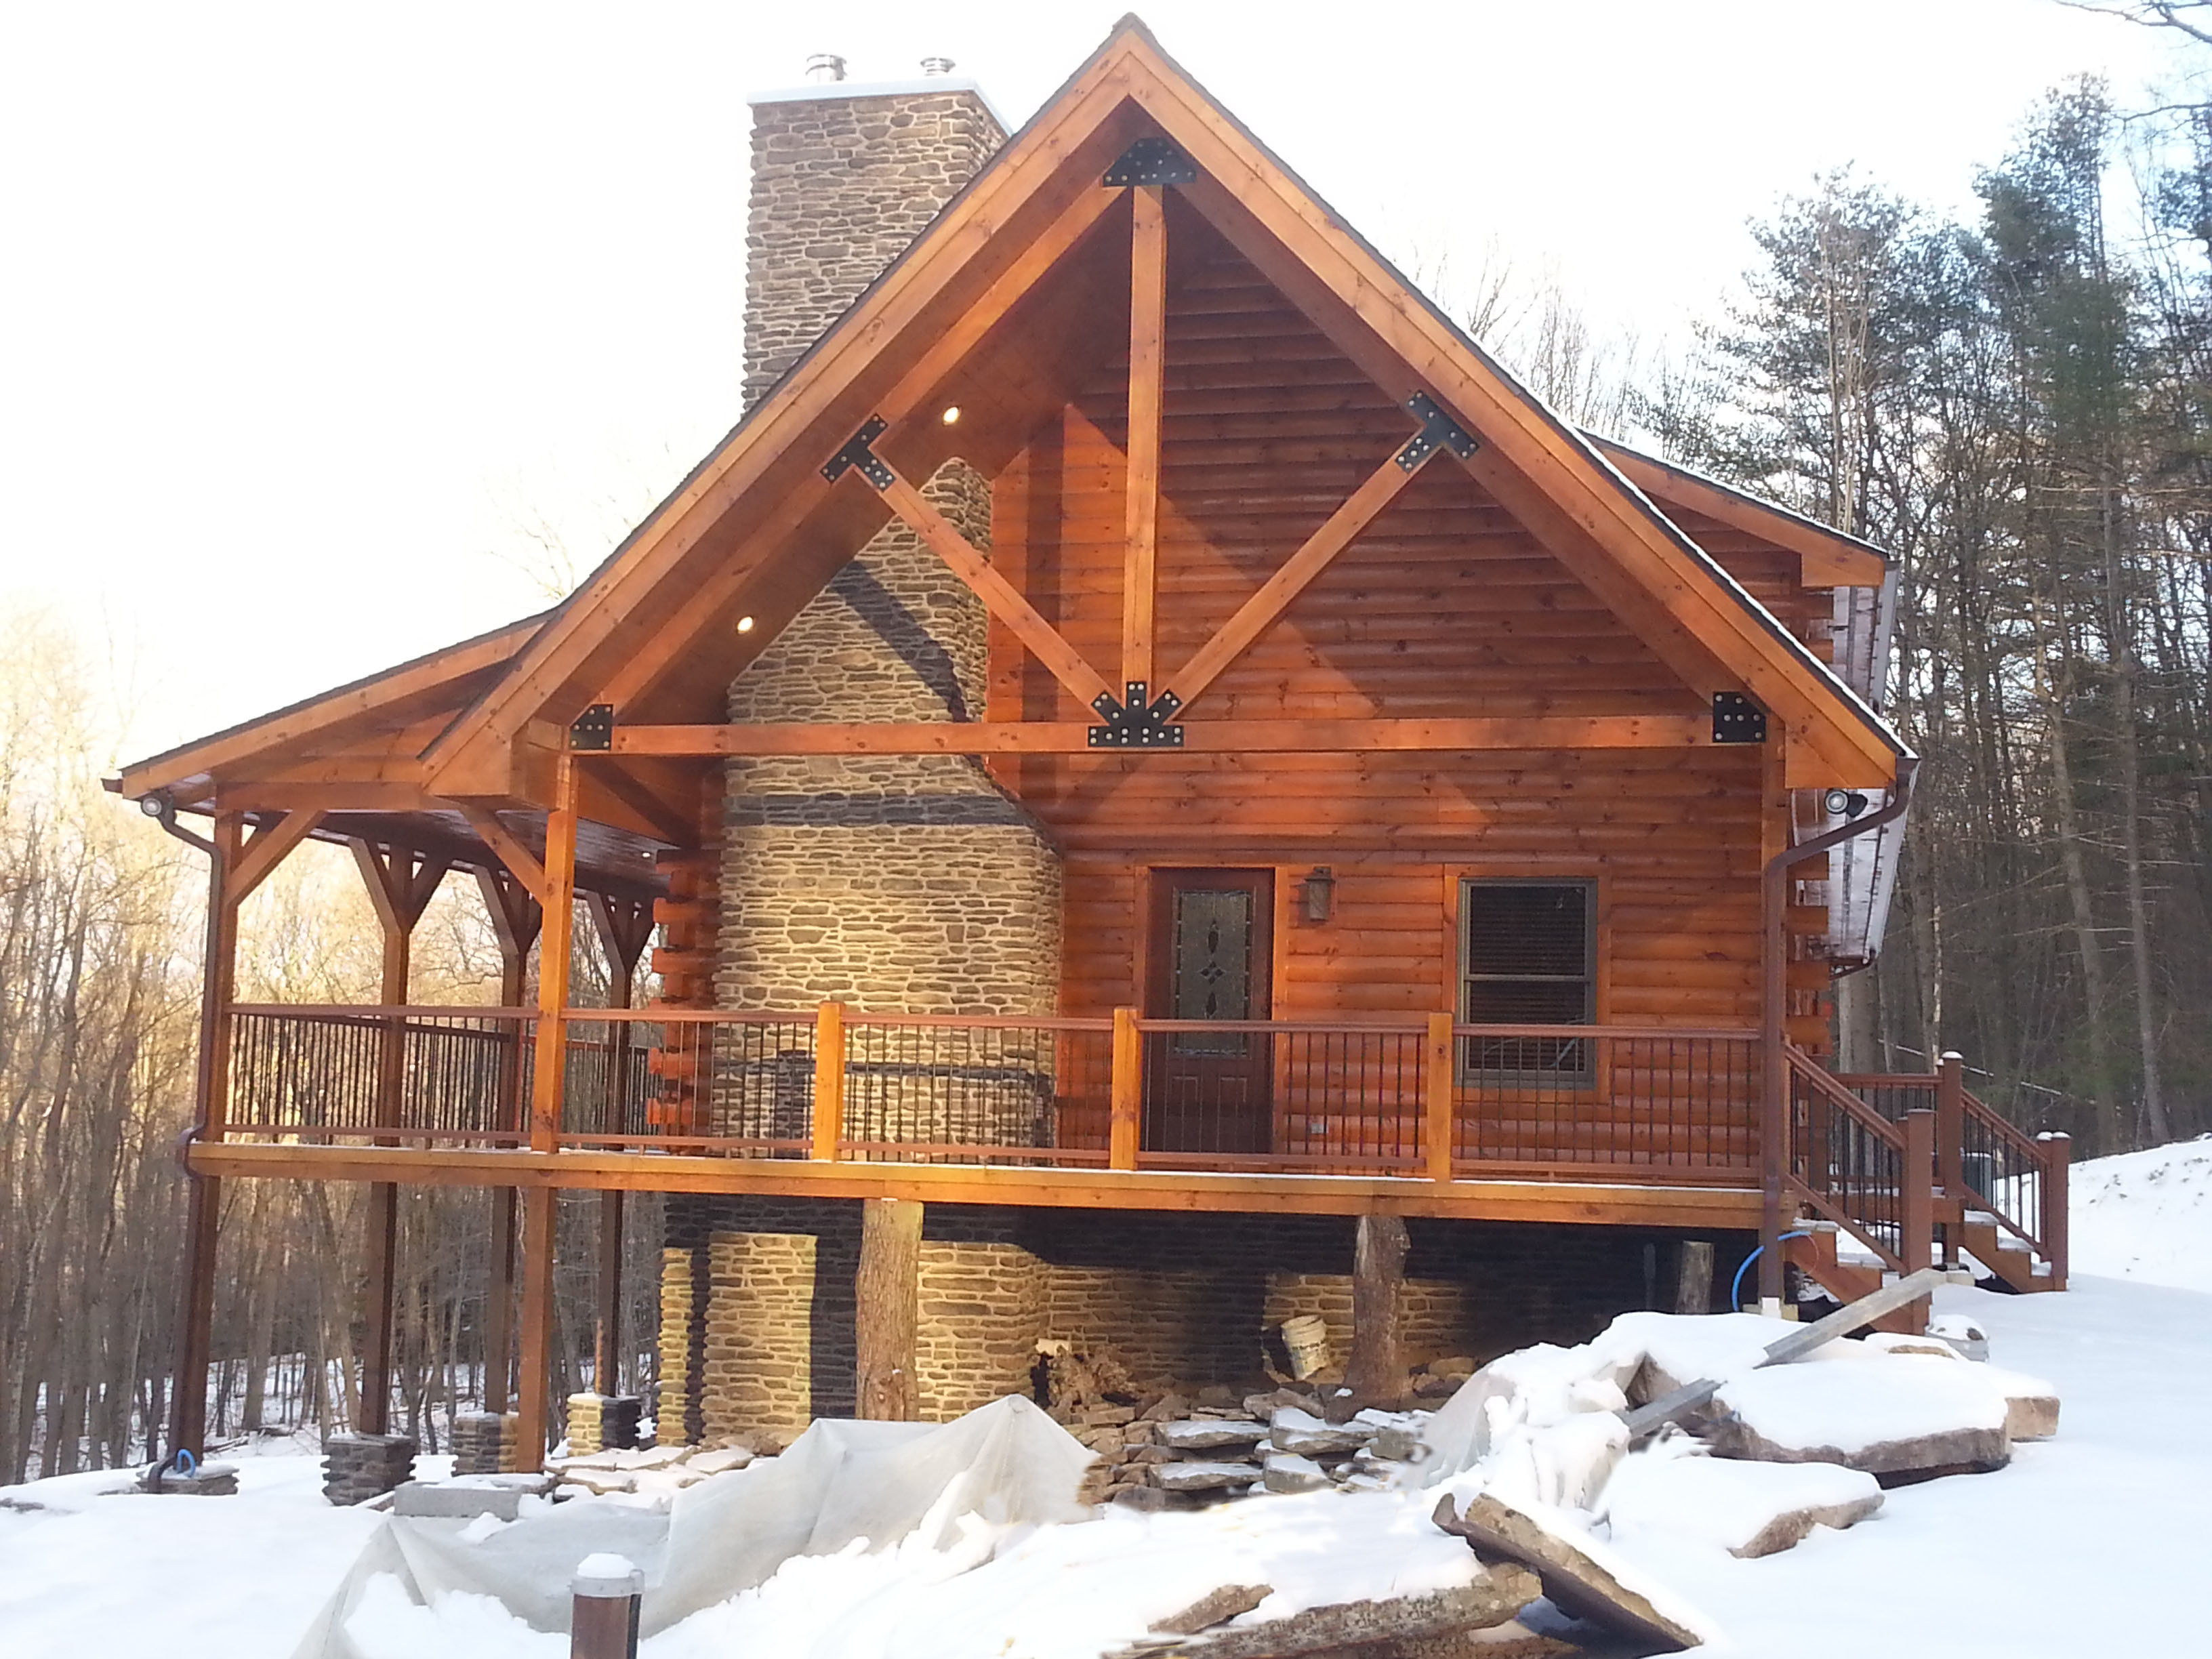 modified Valley View with King Post Truss and massive stone fireplace, Timberhaven Log Homes, Valley View, floor plan ideas, complete customization, laminated logs, engineered logs, kiln dried logs, design services, Pennsylvania, log homes, log cabins, log cabin kits, log cabin homes, log home packages